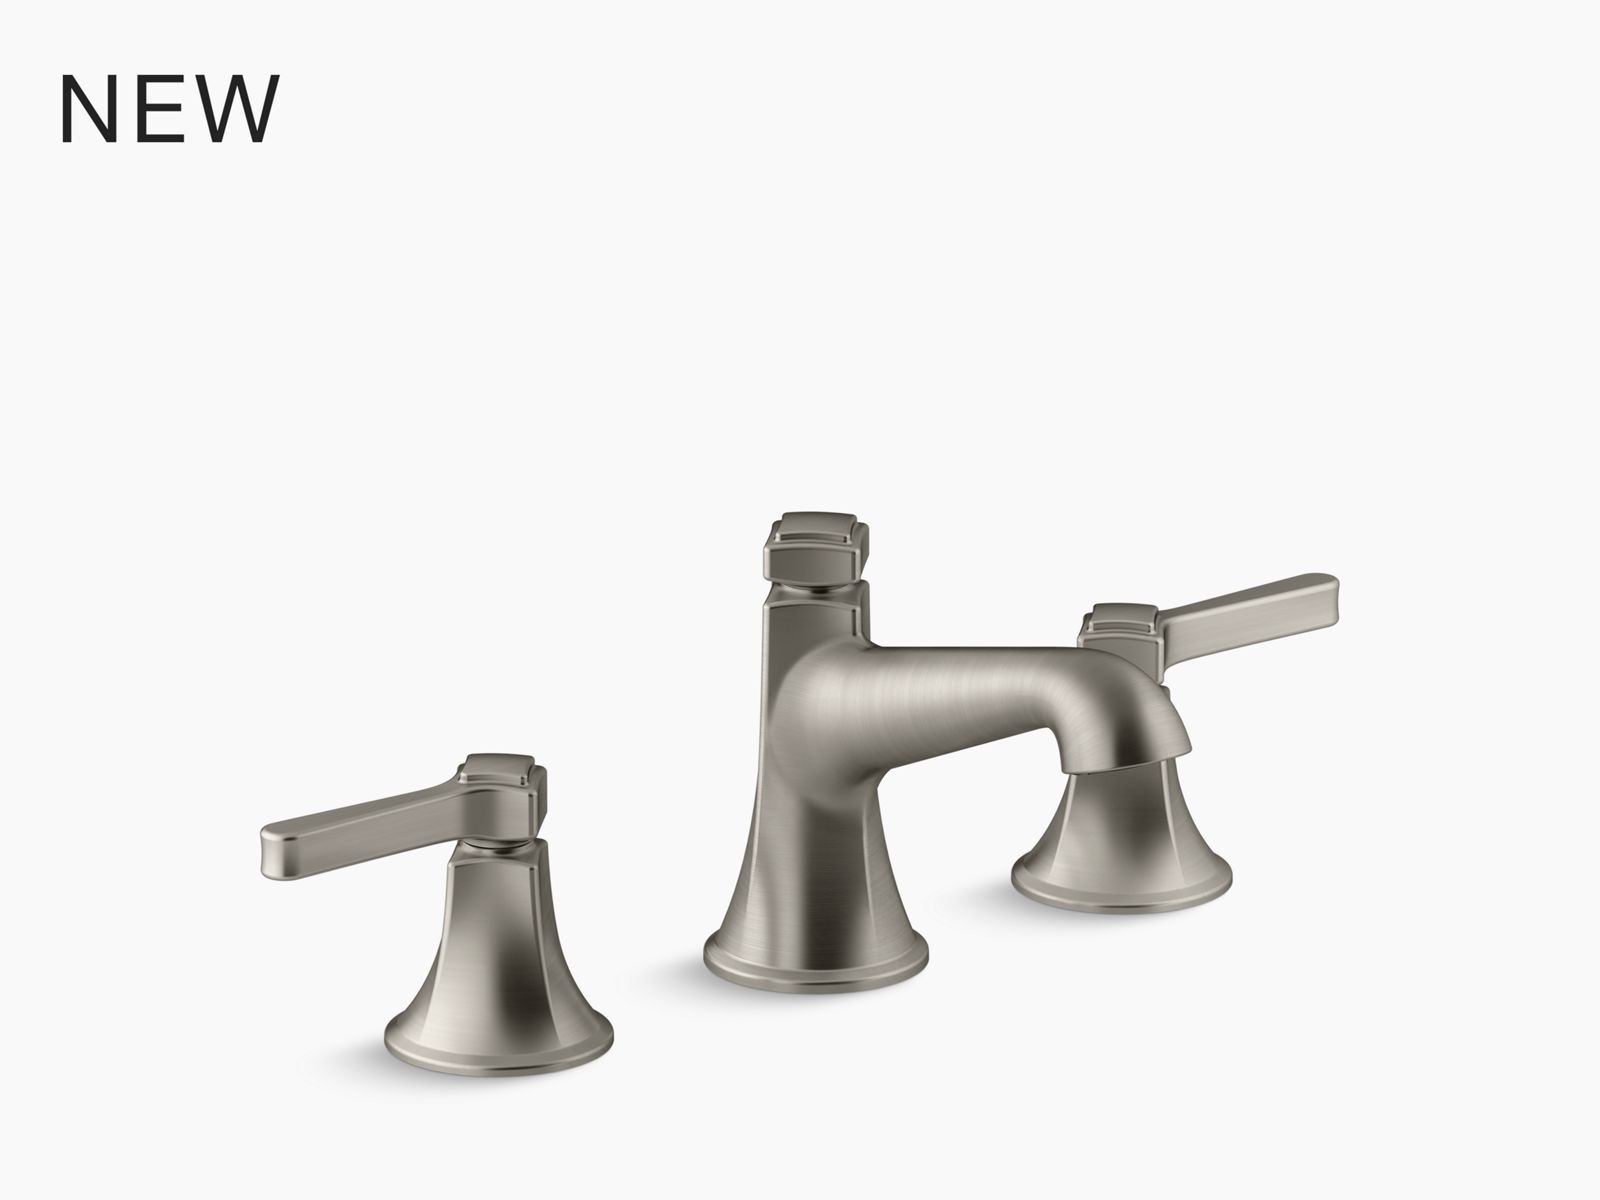 triton bowe 1 5 gpm kitchen sink faucet with 8 3 16 swing spout aerated flow and lever handles